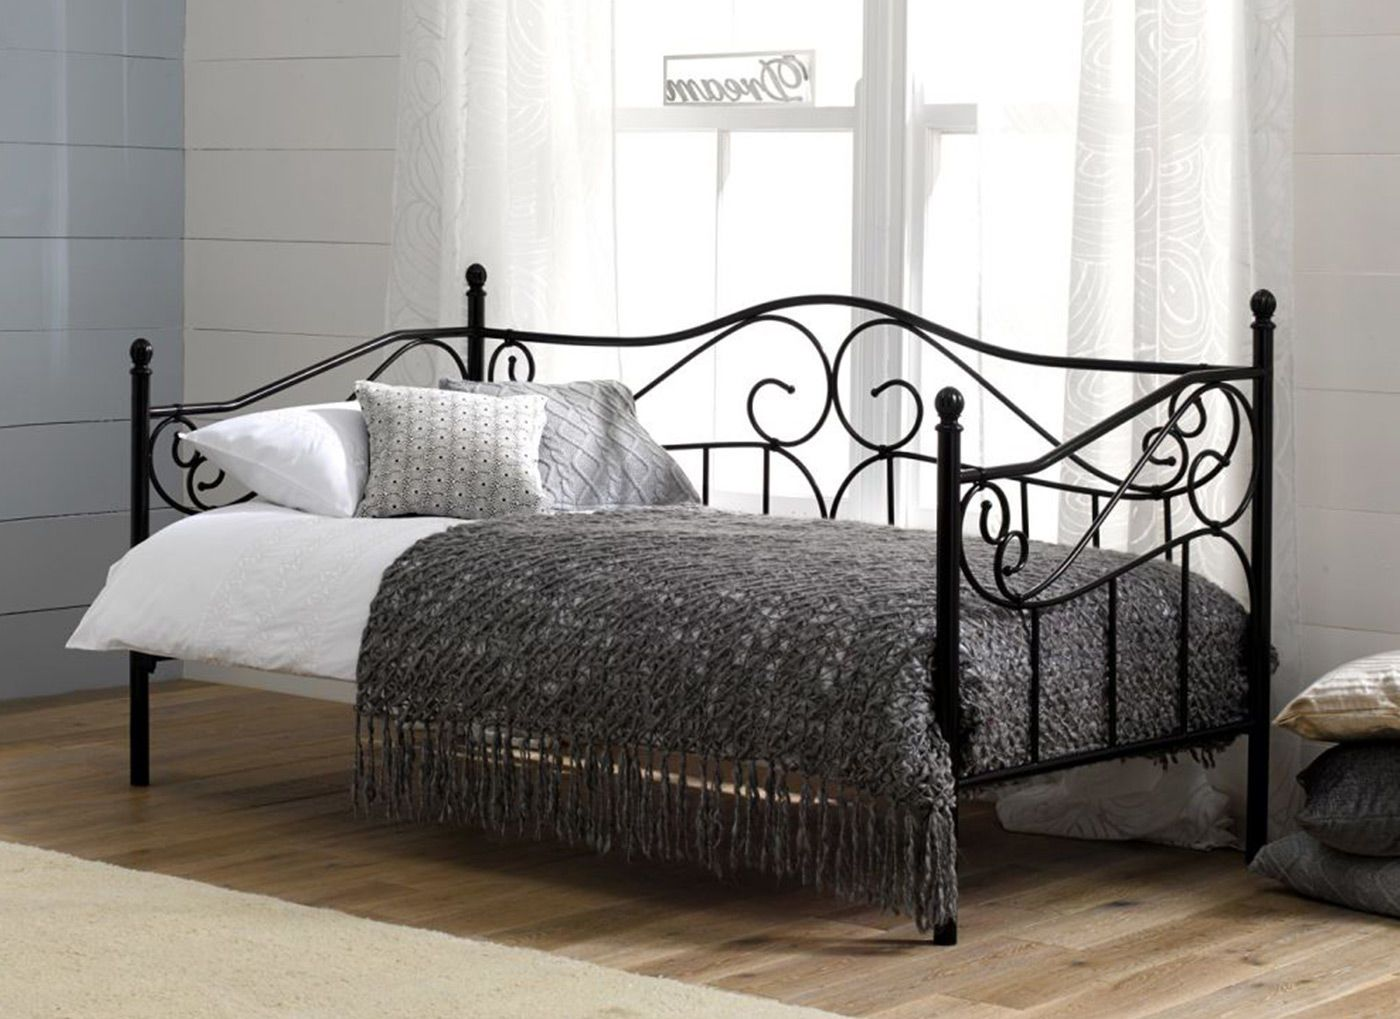 For an elegant day bed, our Amy bedstead couldn't be more